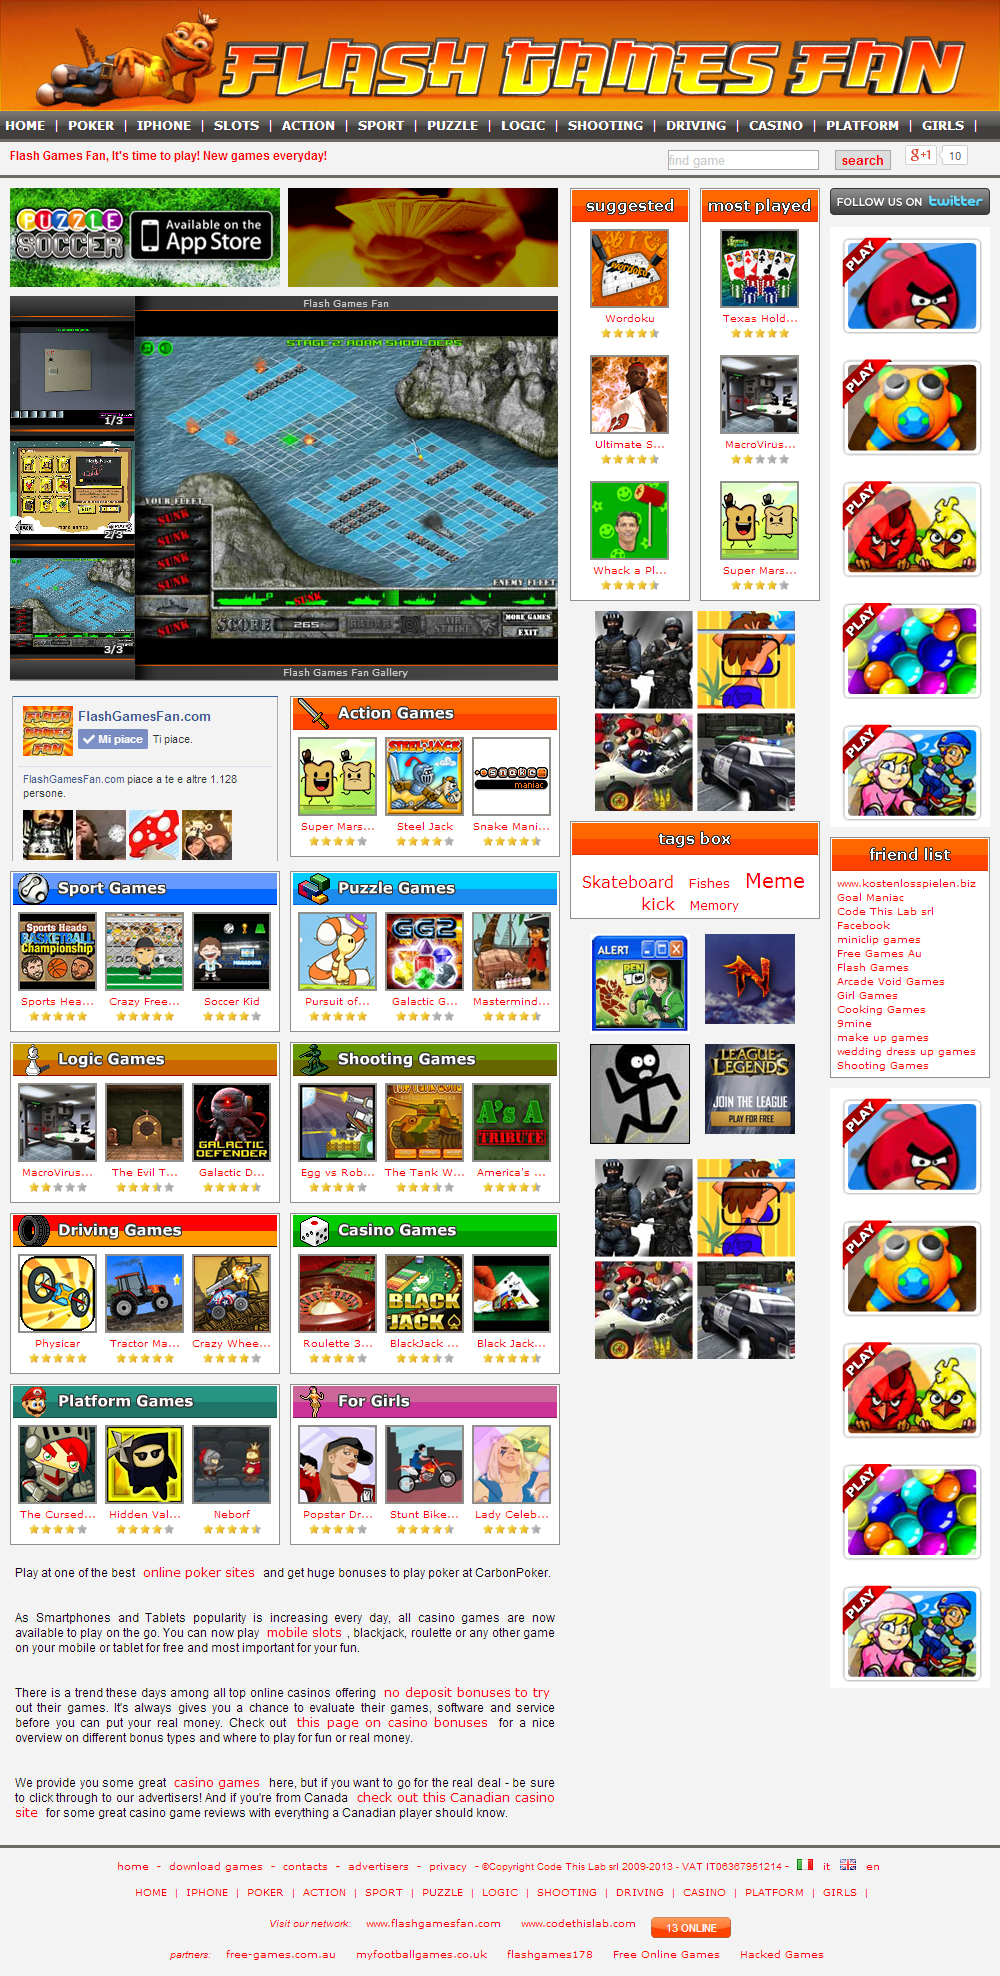 website with free games to play flash games fan code this lab srl